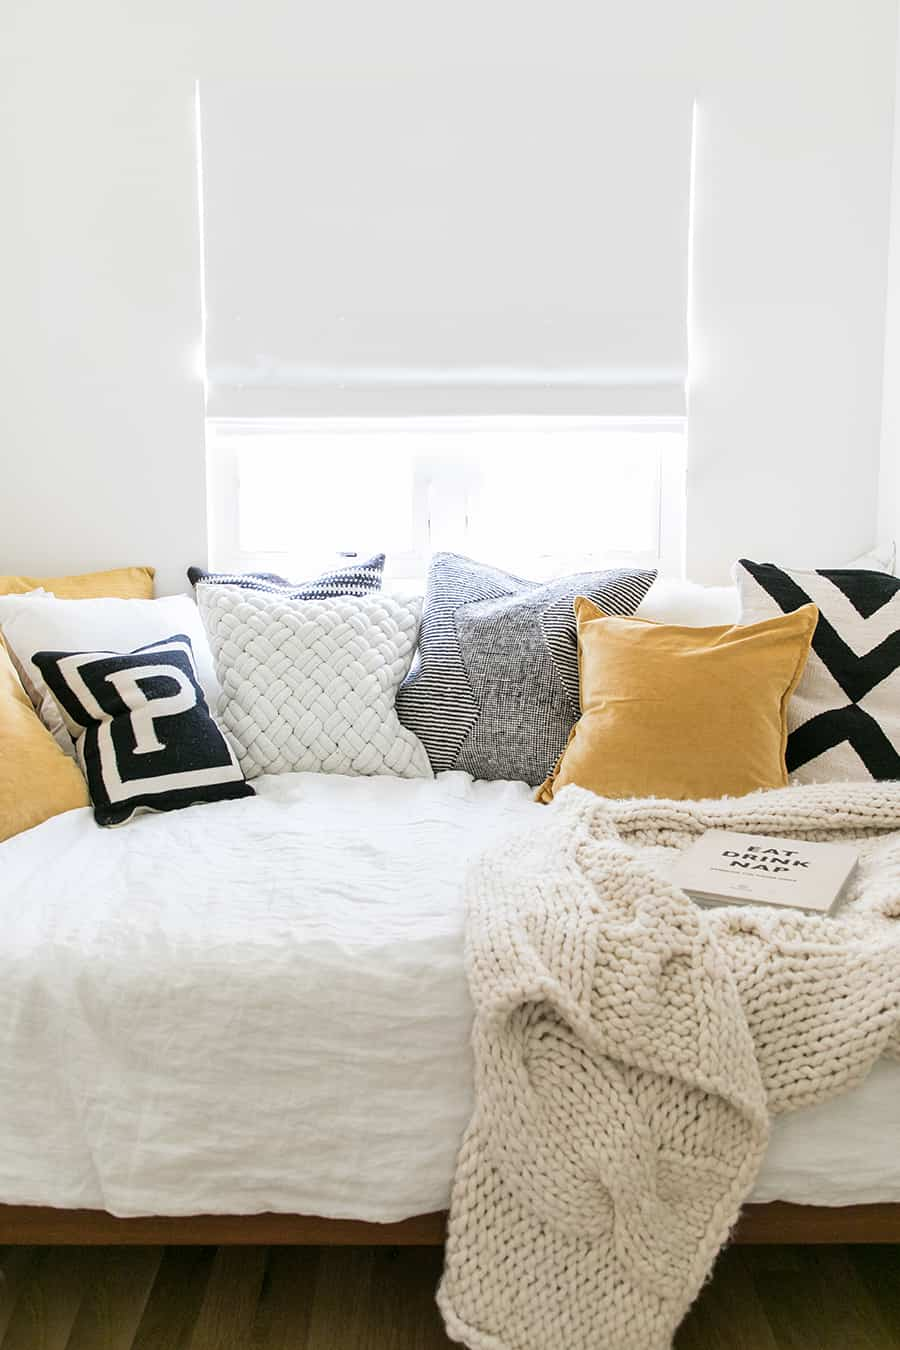 A bed with pillows and a knit blanket